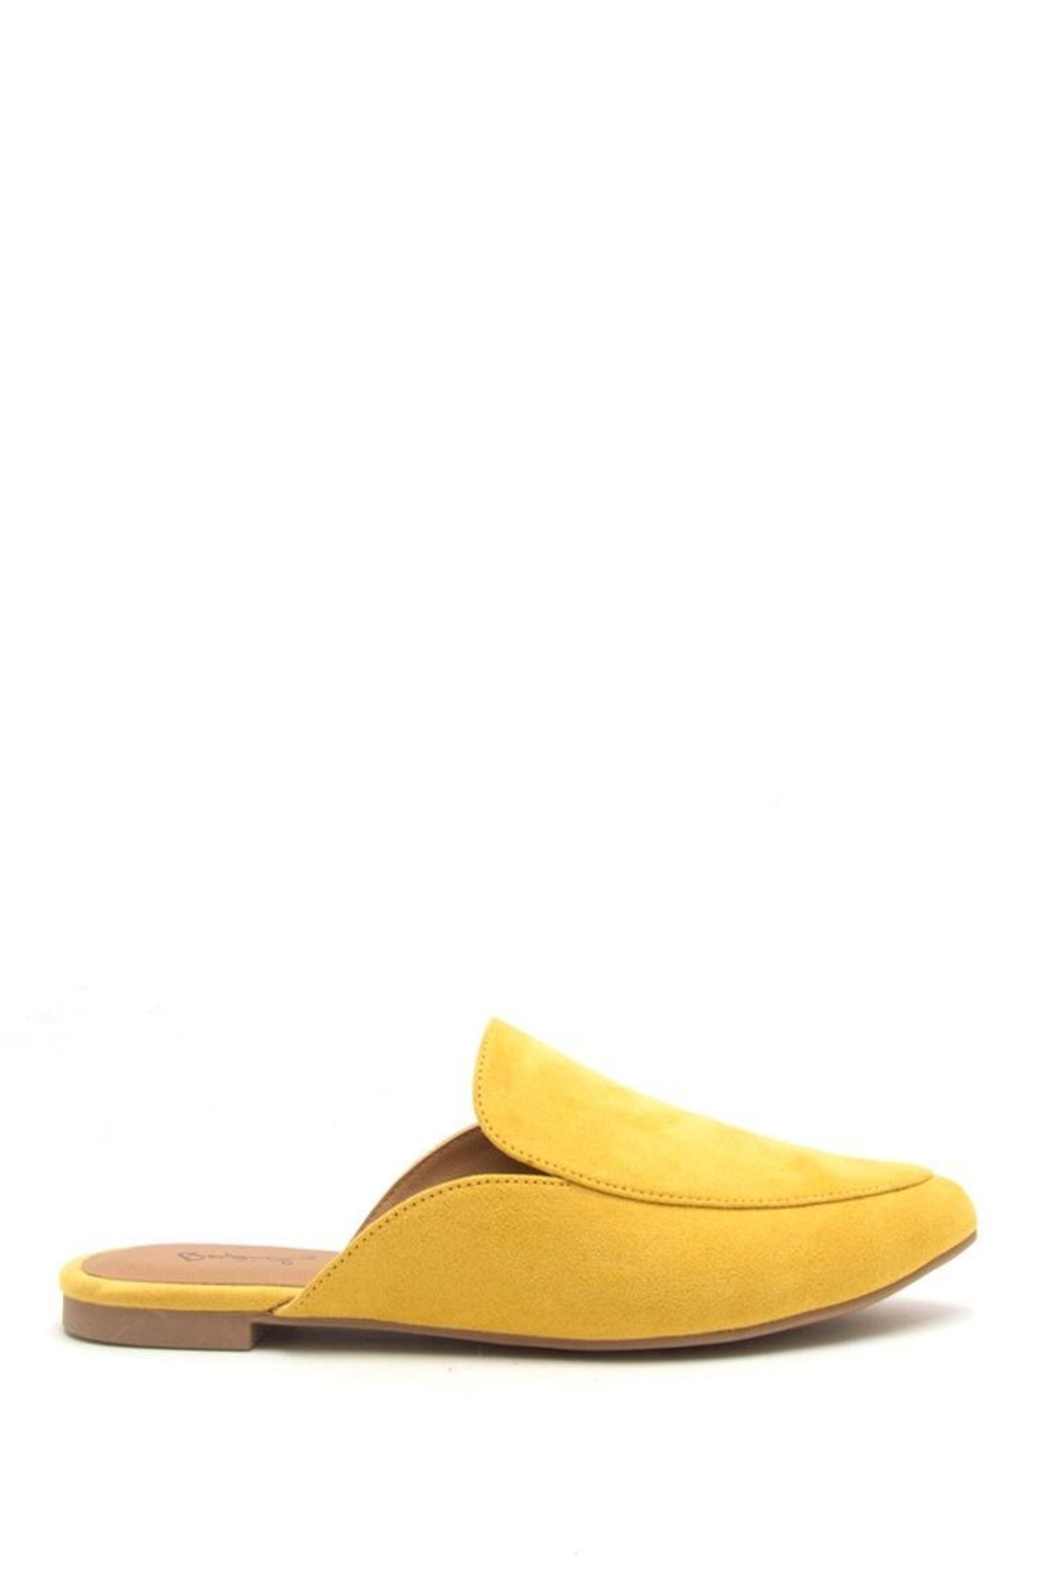 8e8b081e7d4 Qupid Slide In Mules Yellow from Orlando by Zingara Souls — Shoptiques